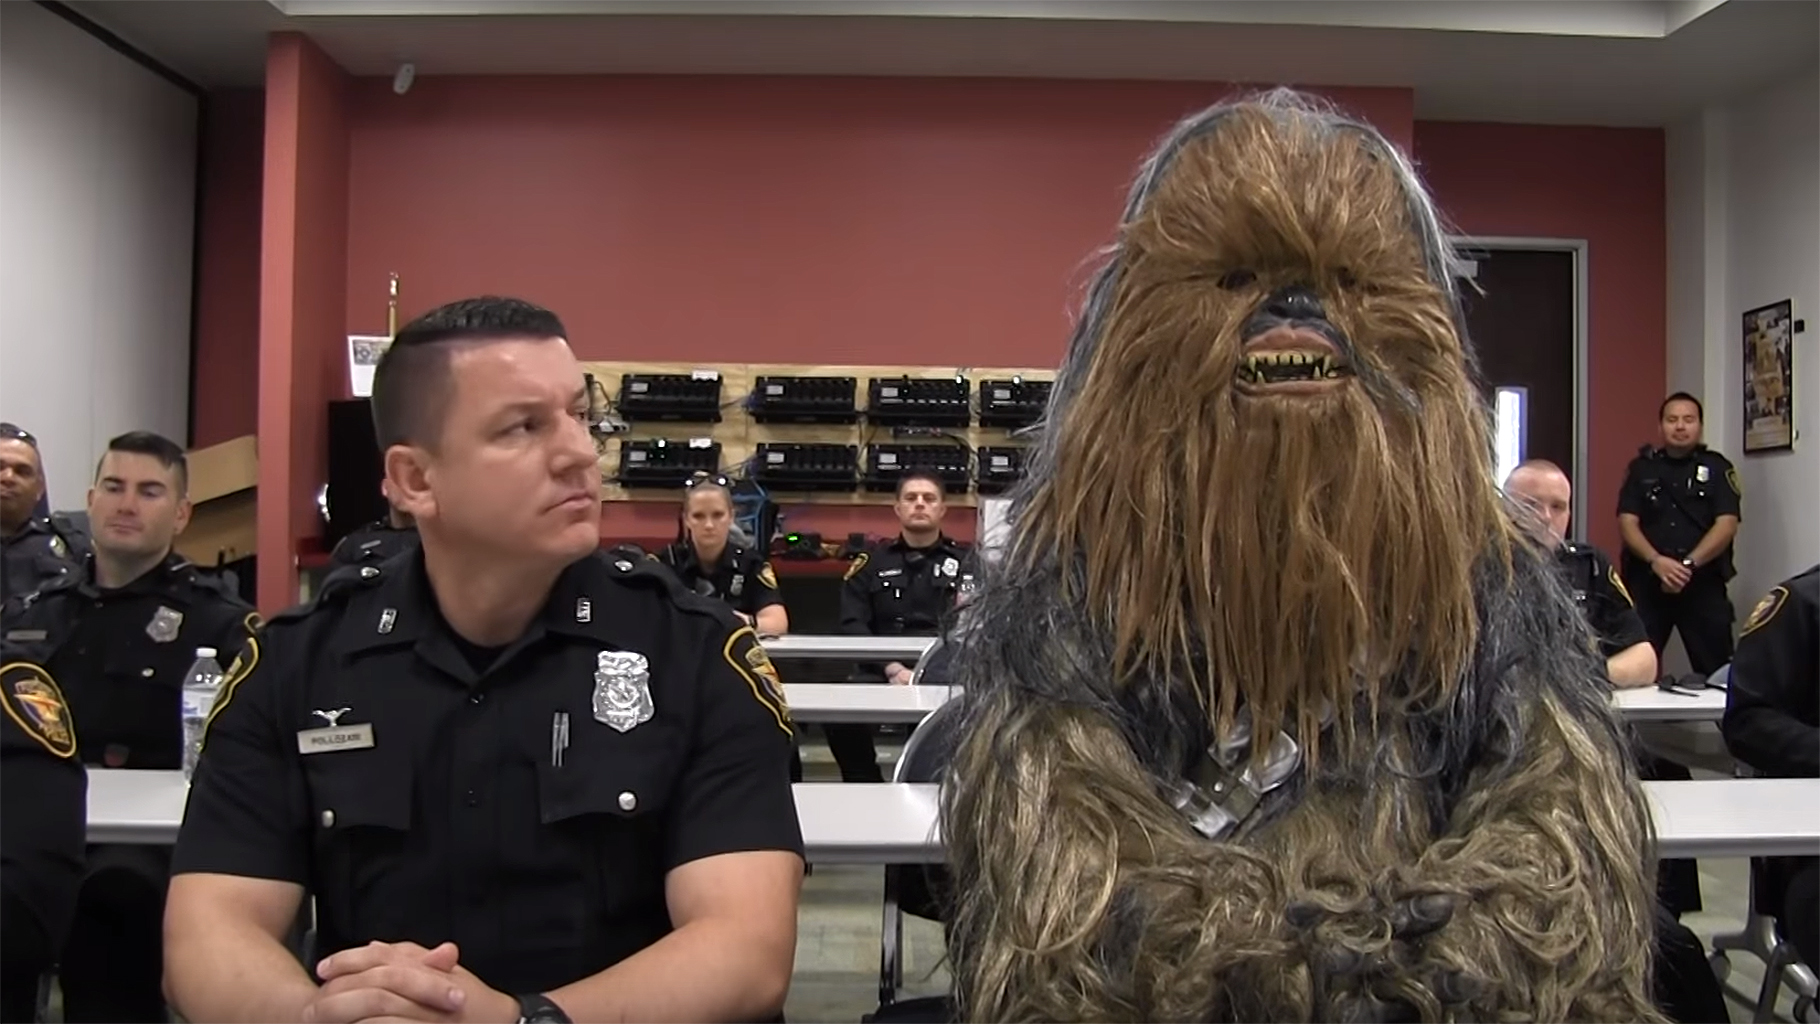 Police Departments Waive Tattoo Bans, Enlist Wookiees to